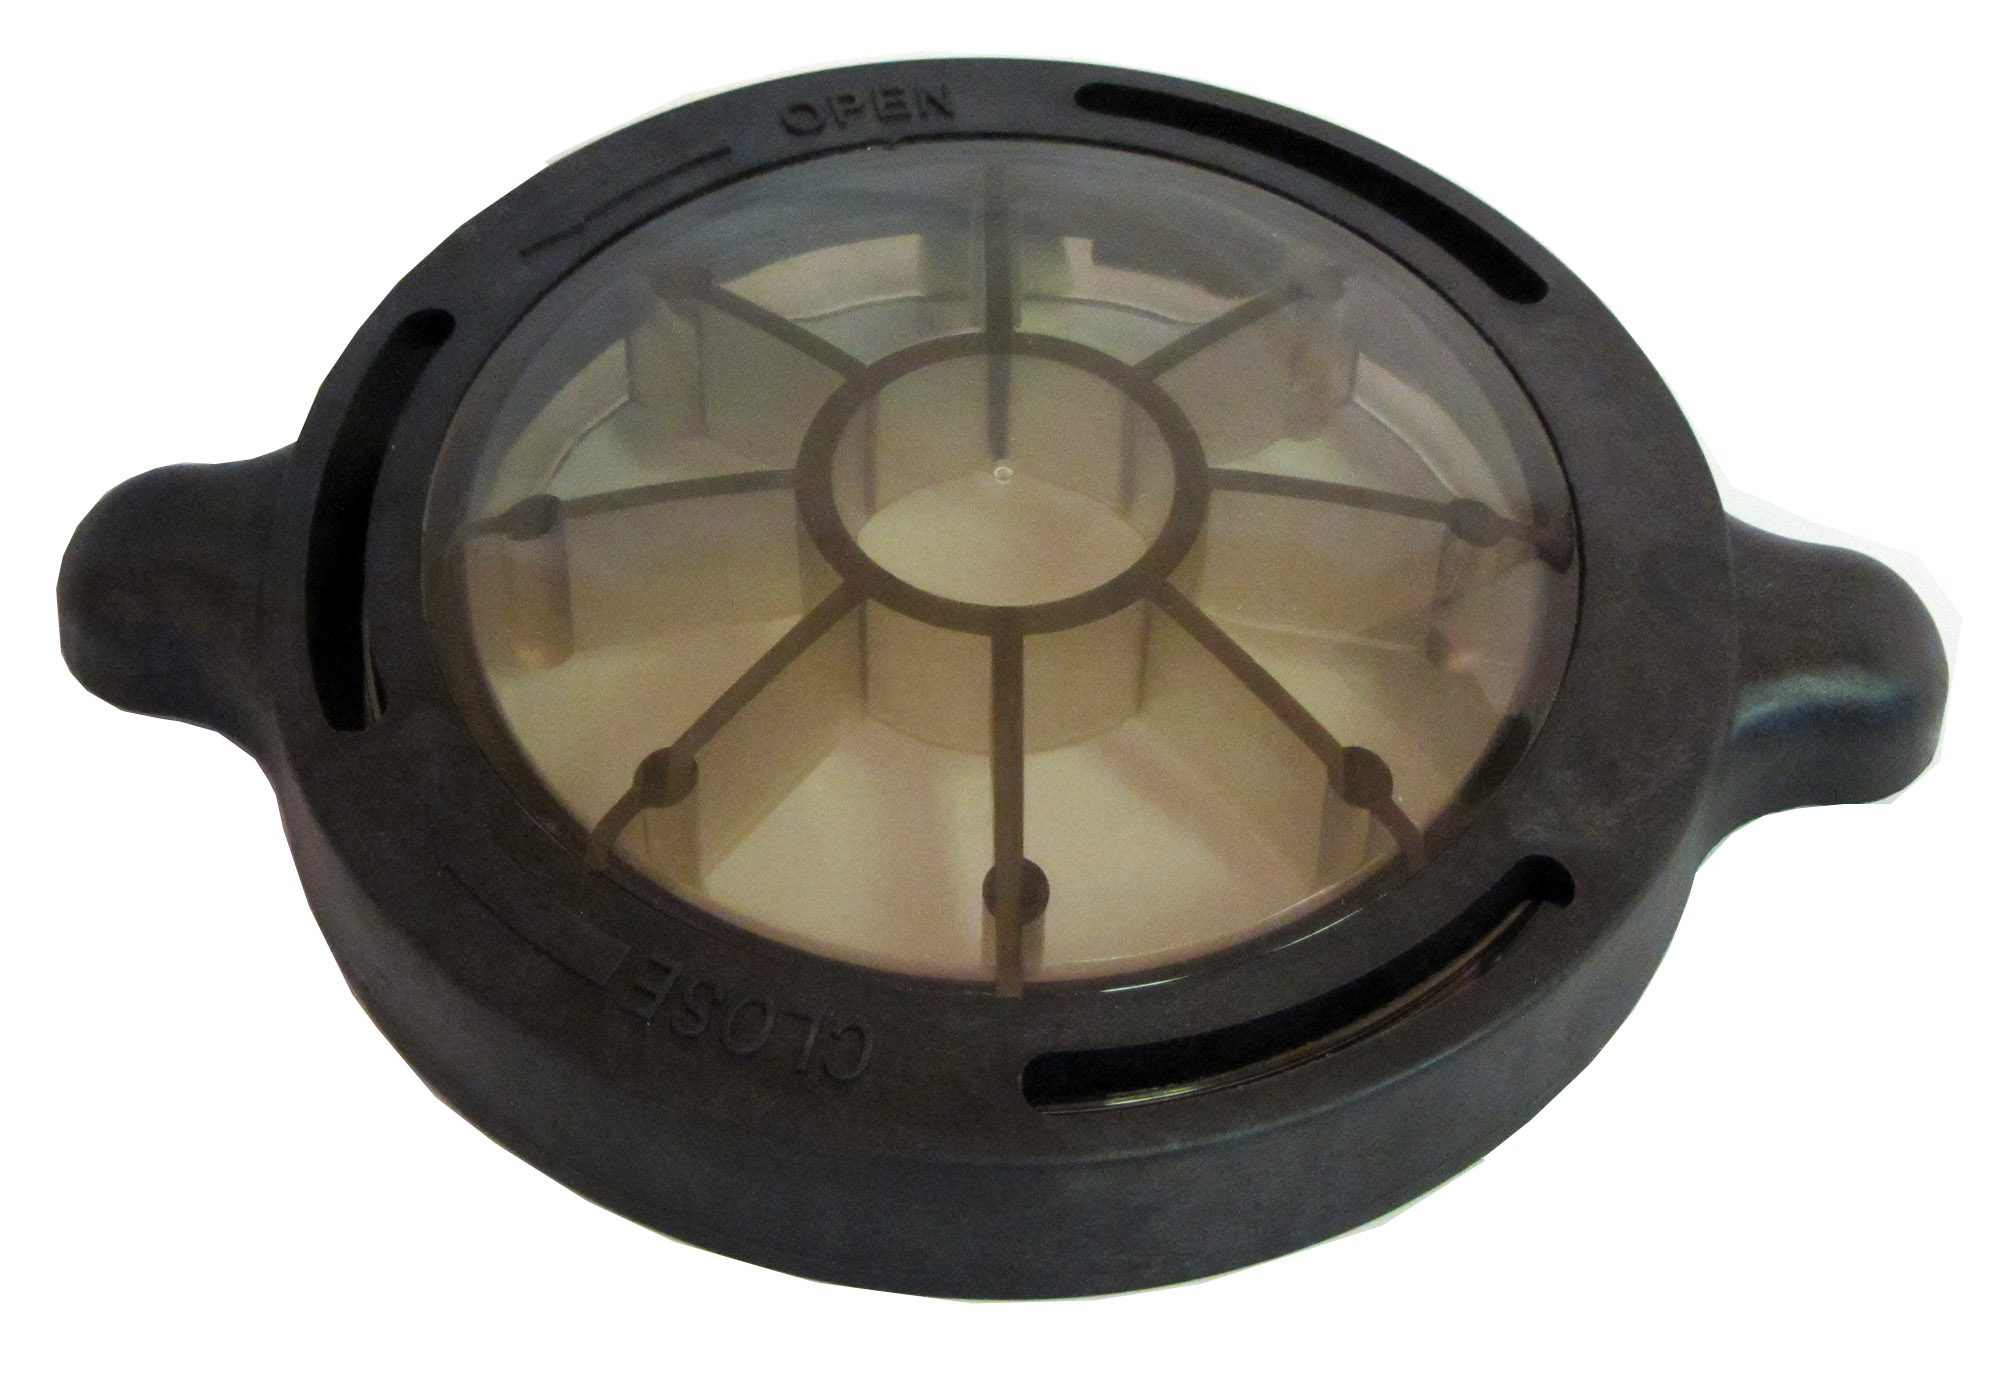 Replacement Pump Cover For Splapool Above Ground And In Ground Pool Pumps Ebay